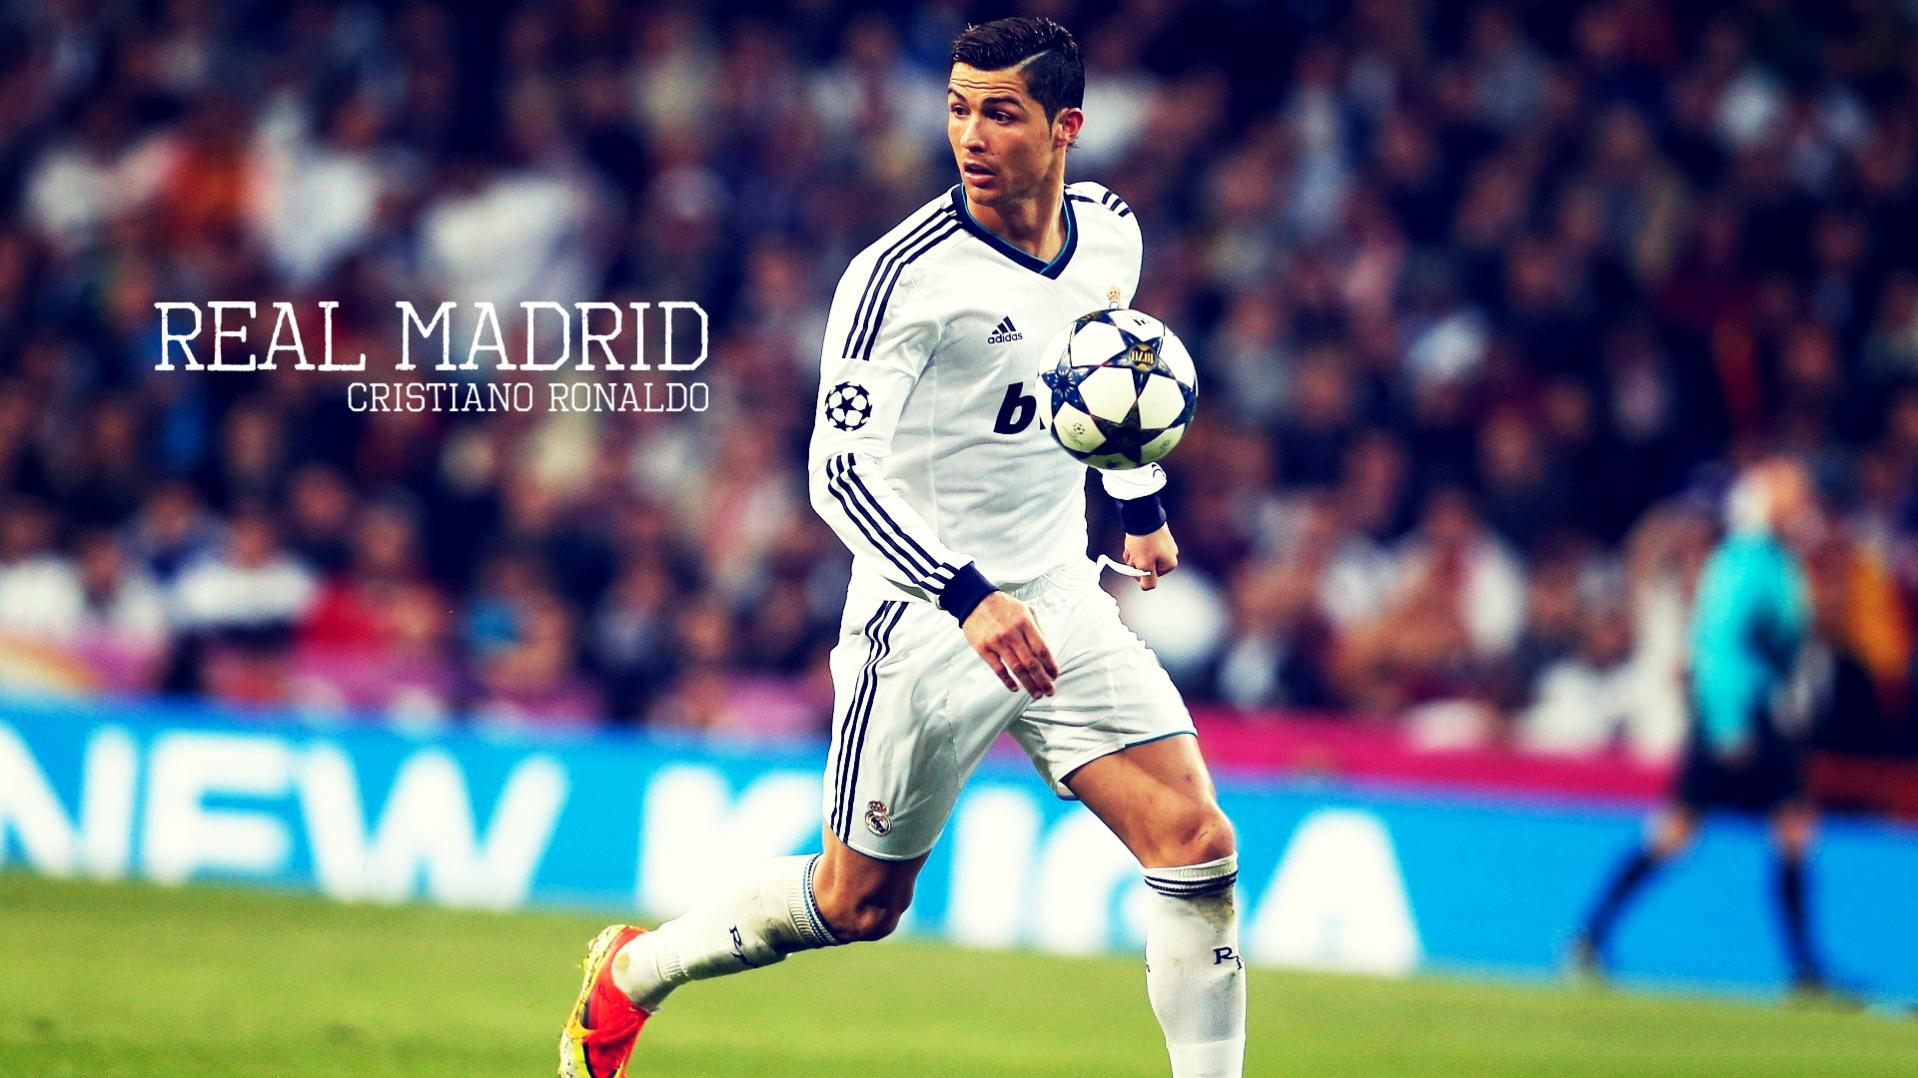 Cr7 and bale hd wallpapers 2016 wallpaper cave - Hd photos of cr7 ...